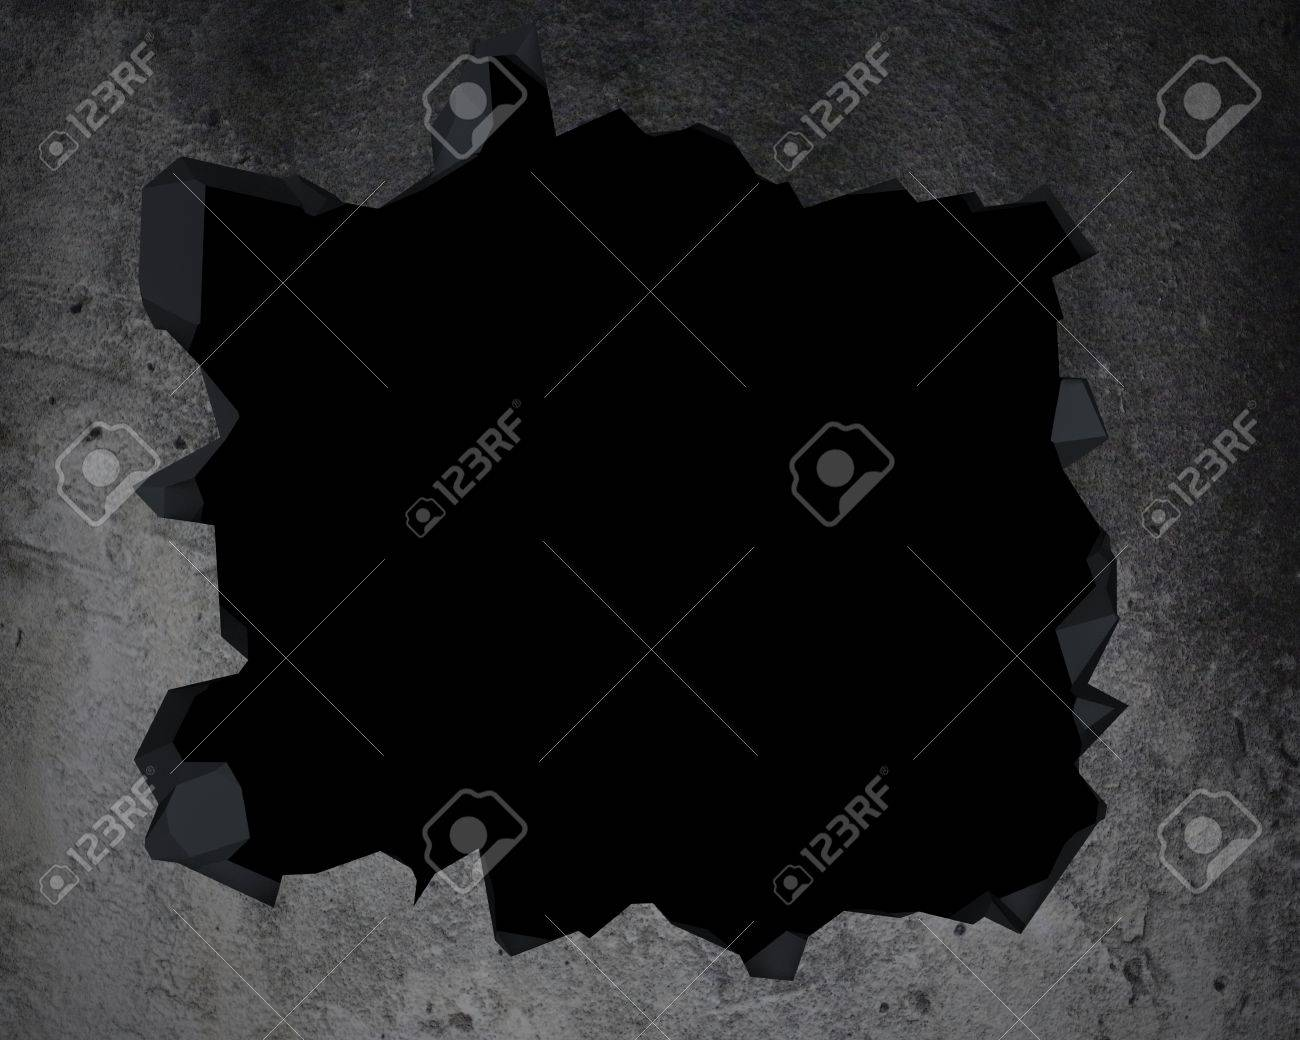 background with crack carbon Band Stock Photo - 12839462